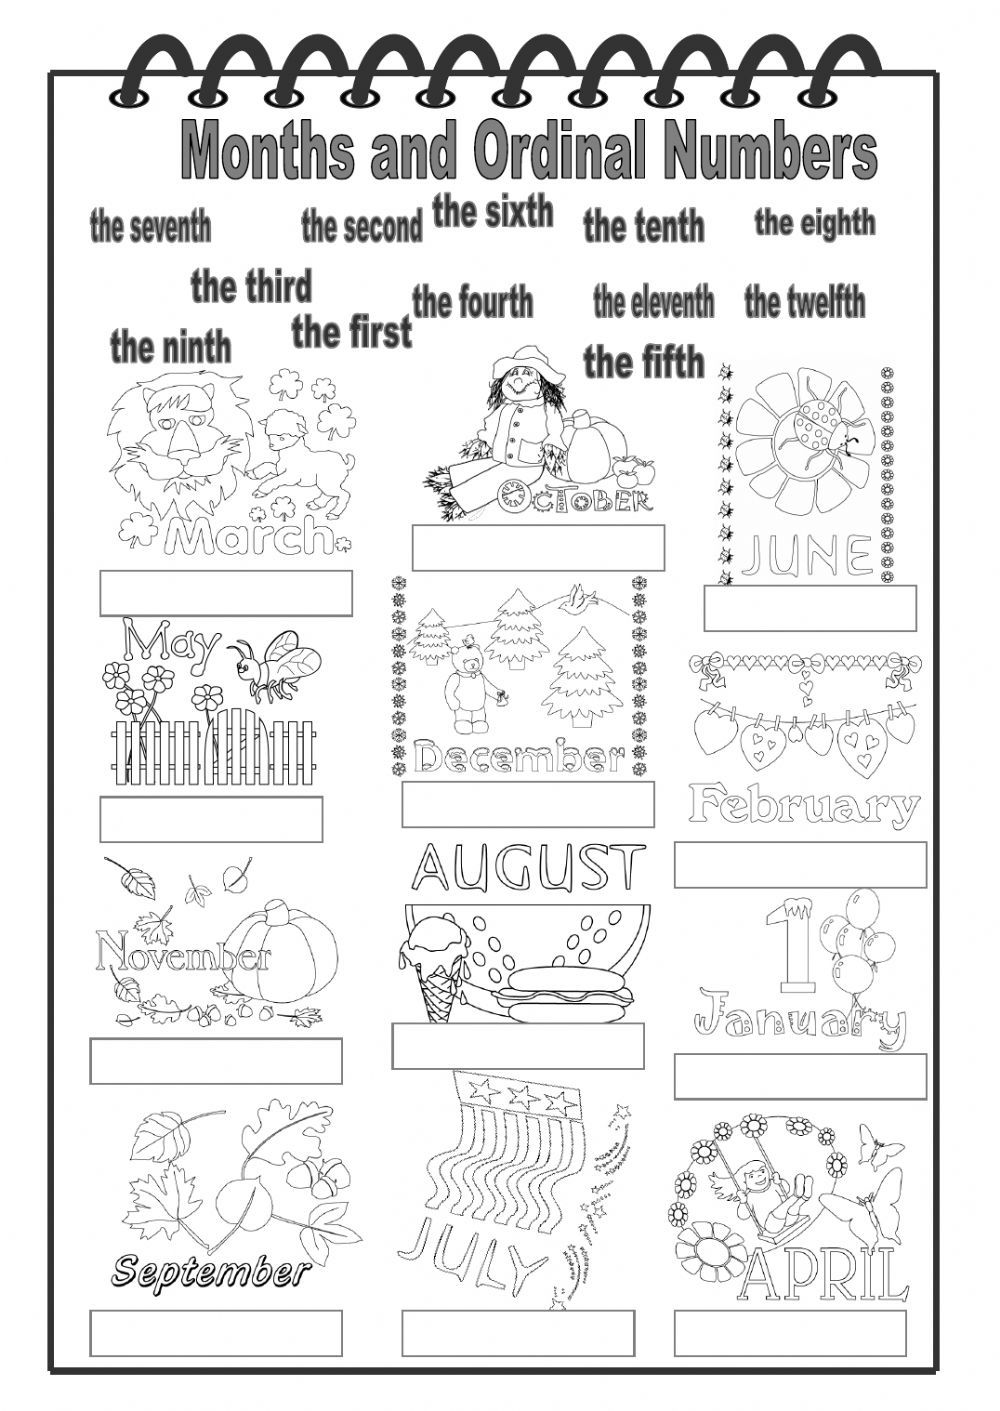 Months and Ordinal Numbers - Interactive worksheet | The Months ...